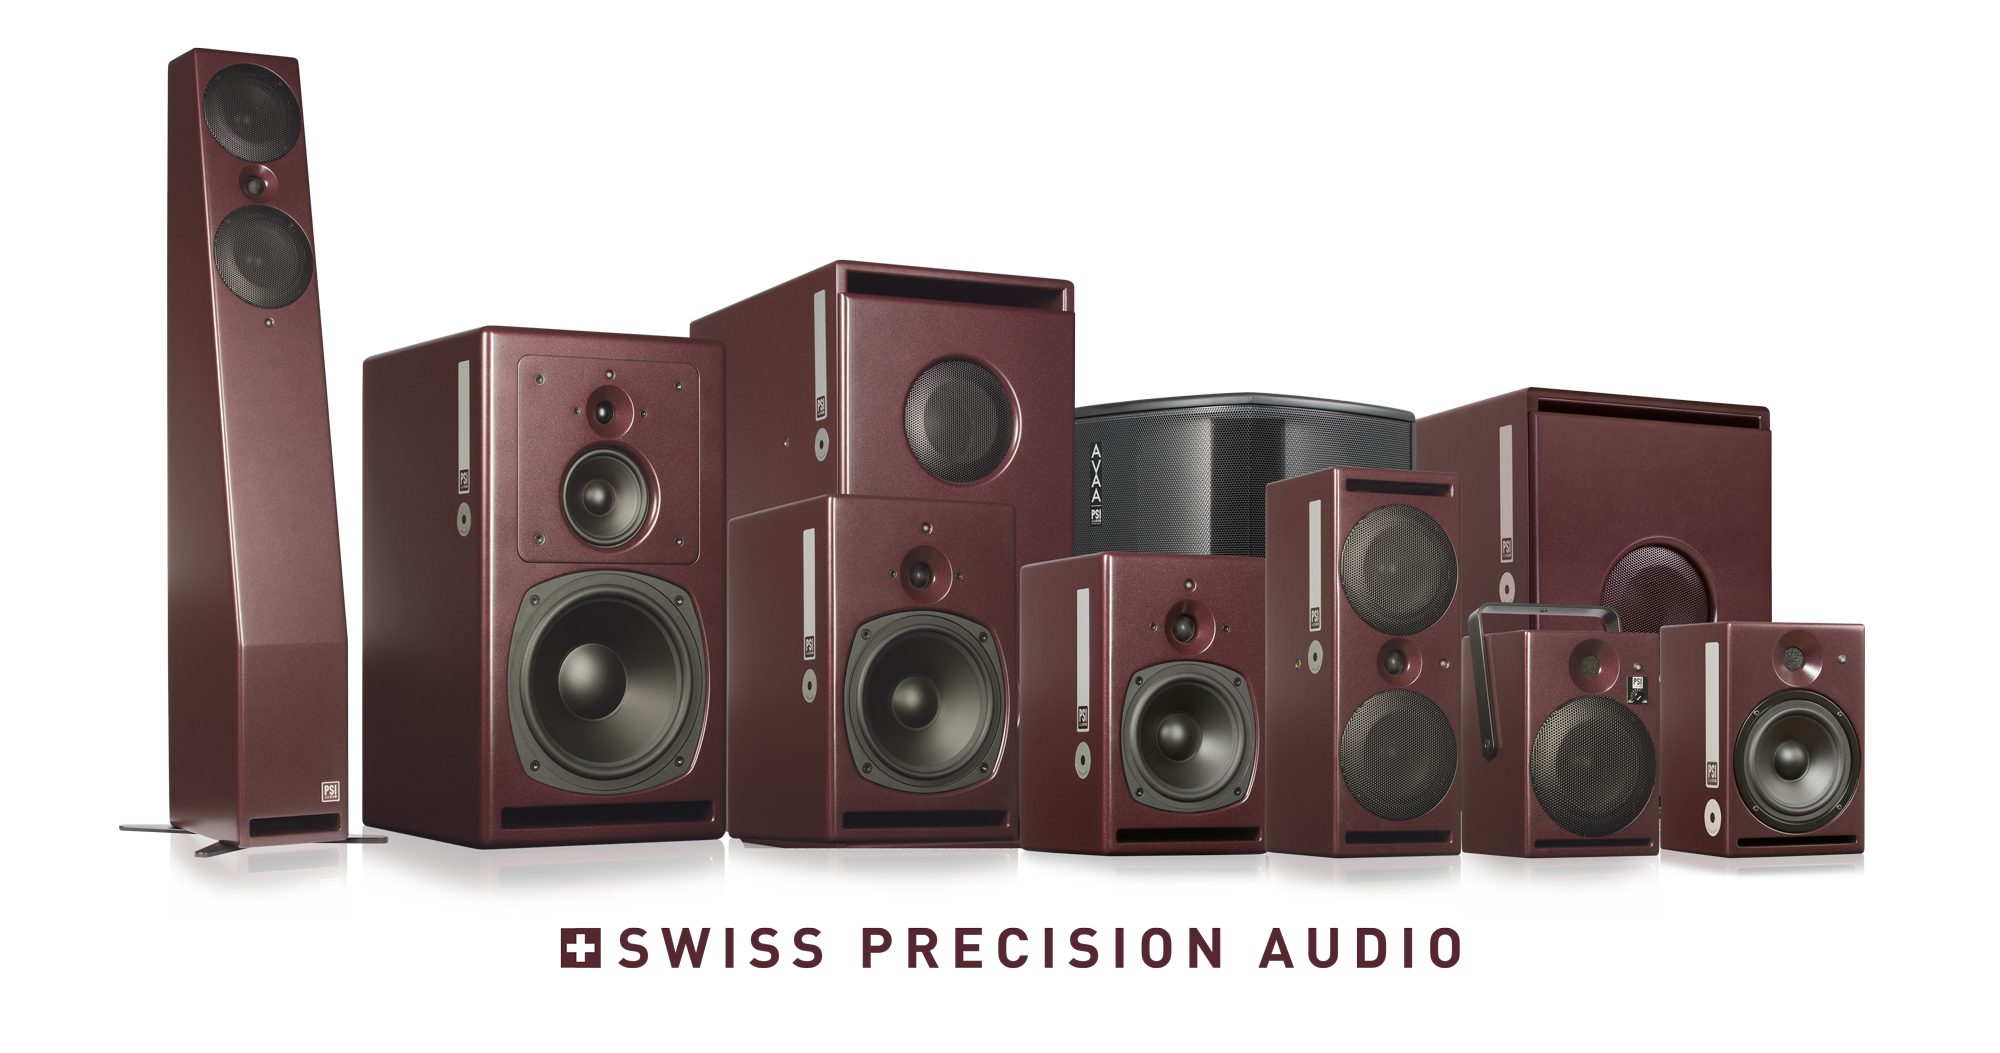 PSI Audio Active studio monitors complete family 2018